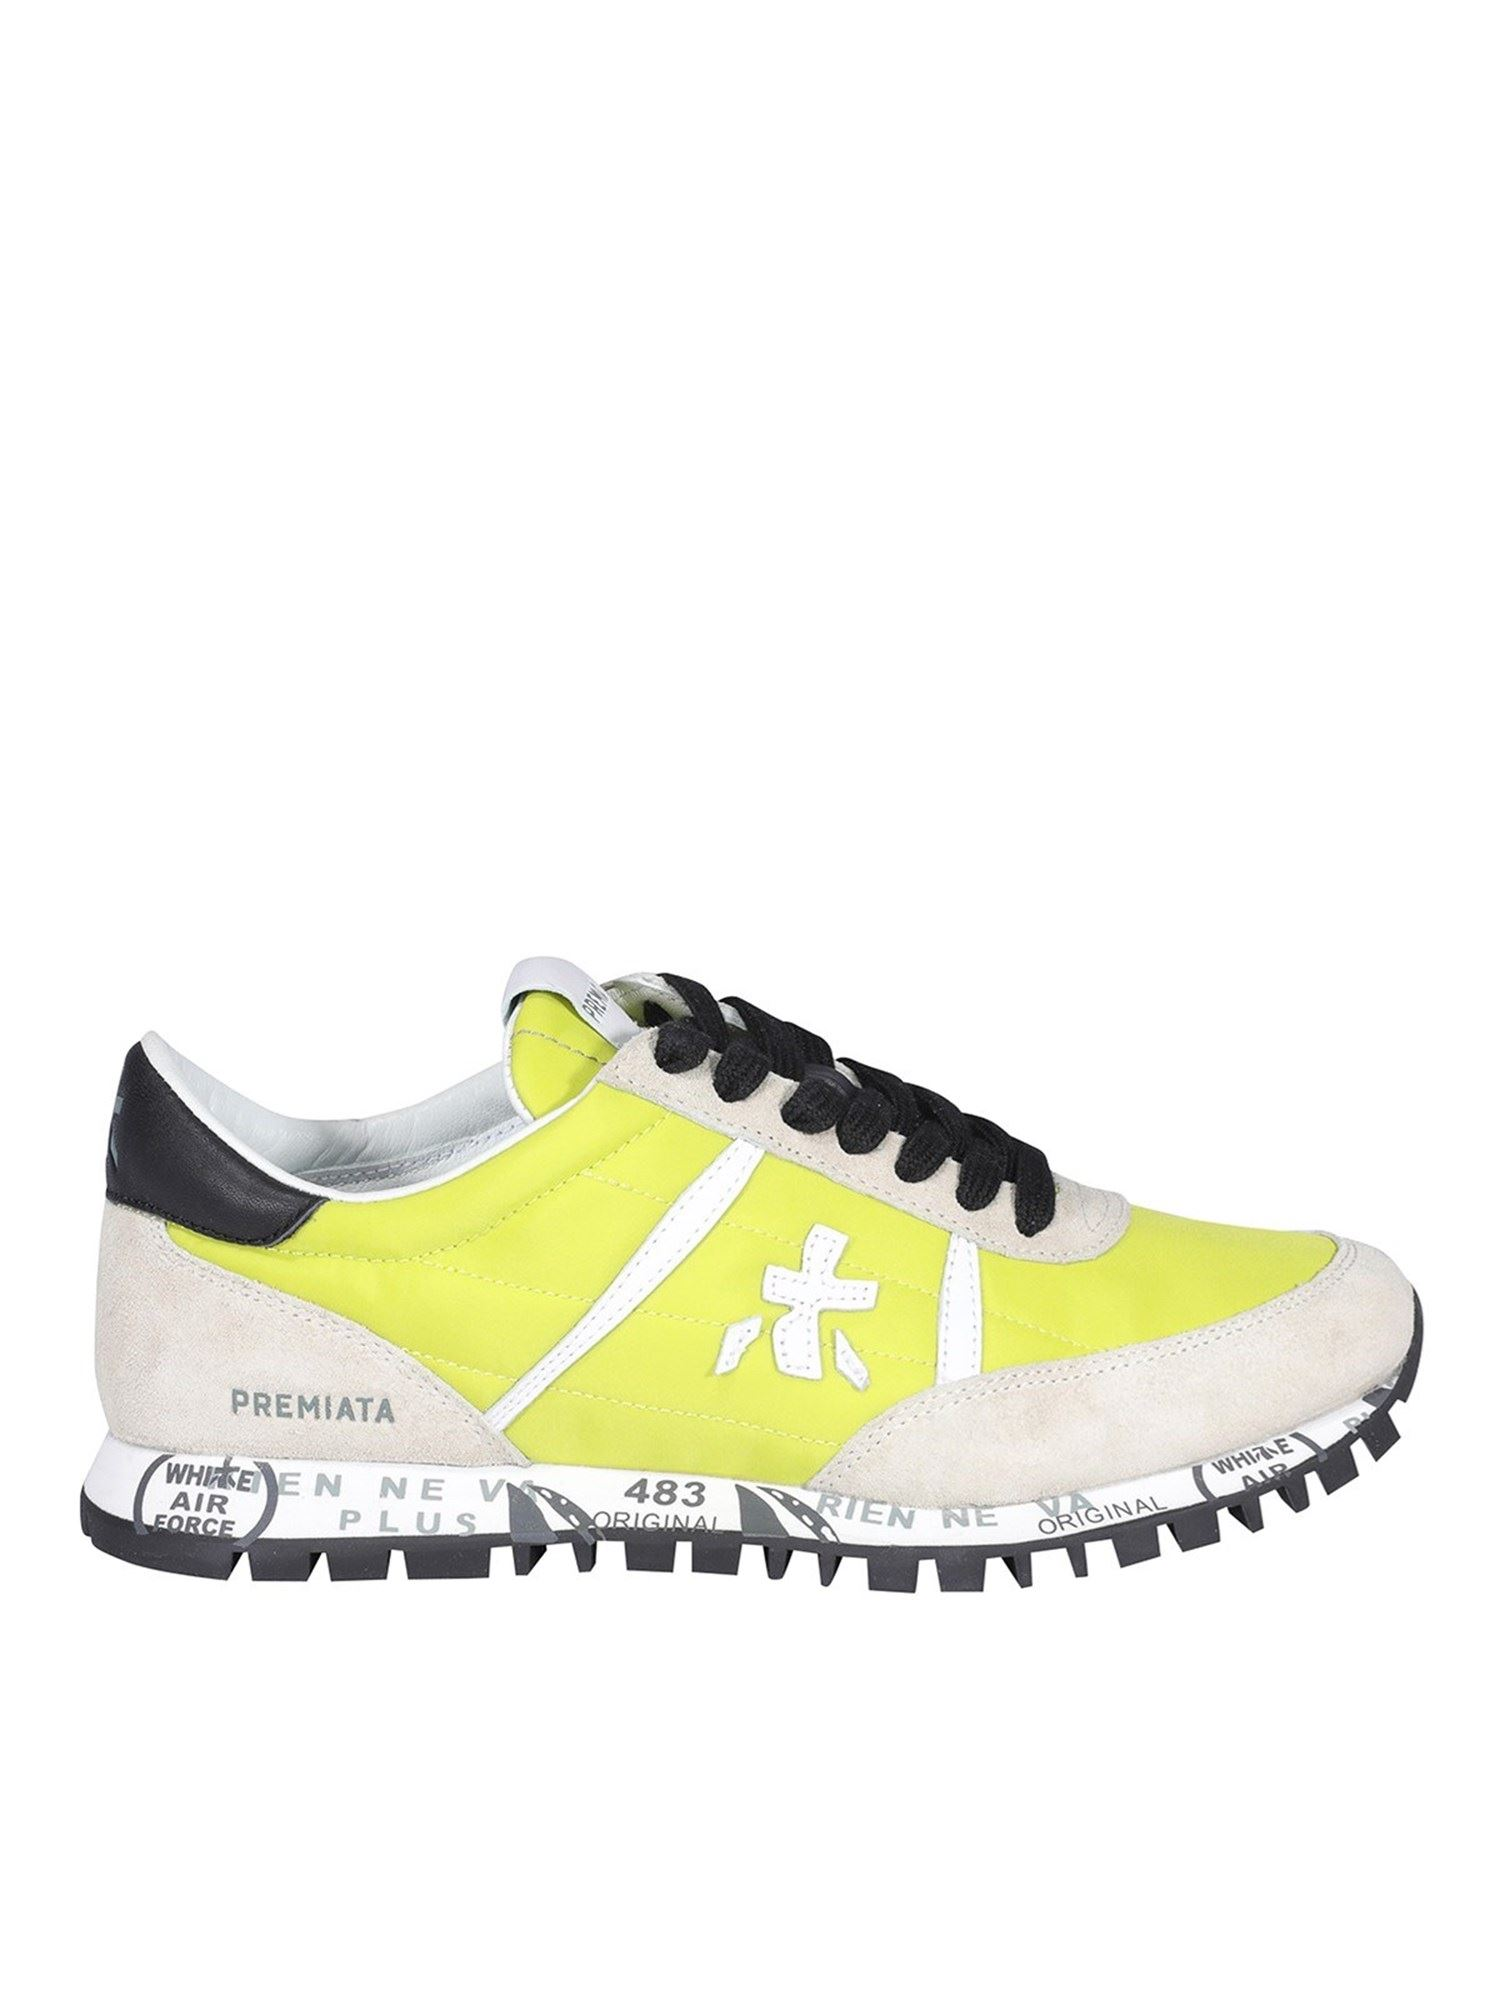 Premiata Leathers SEAND SNEAKERS IN YELLOW